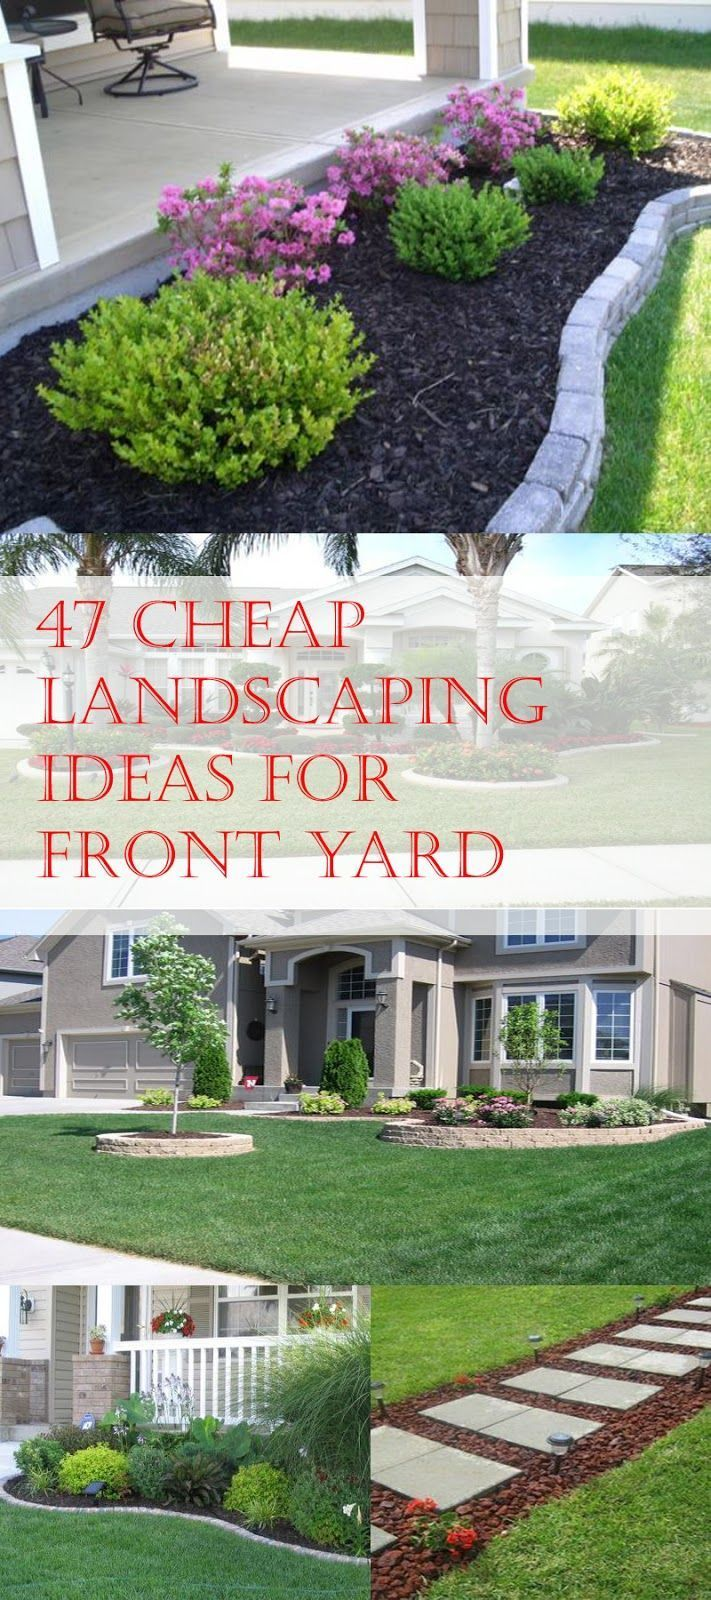 47 Cheap Landscaping Ideas For Front Yard Diy